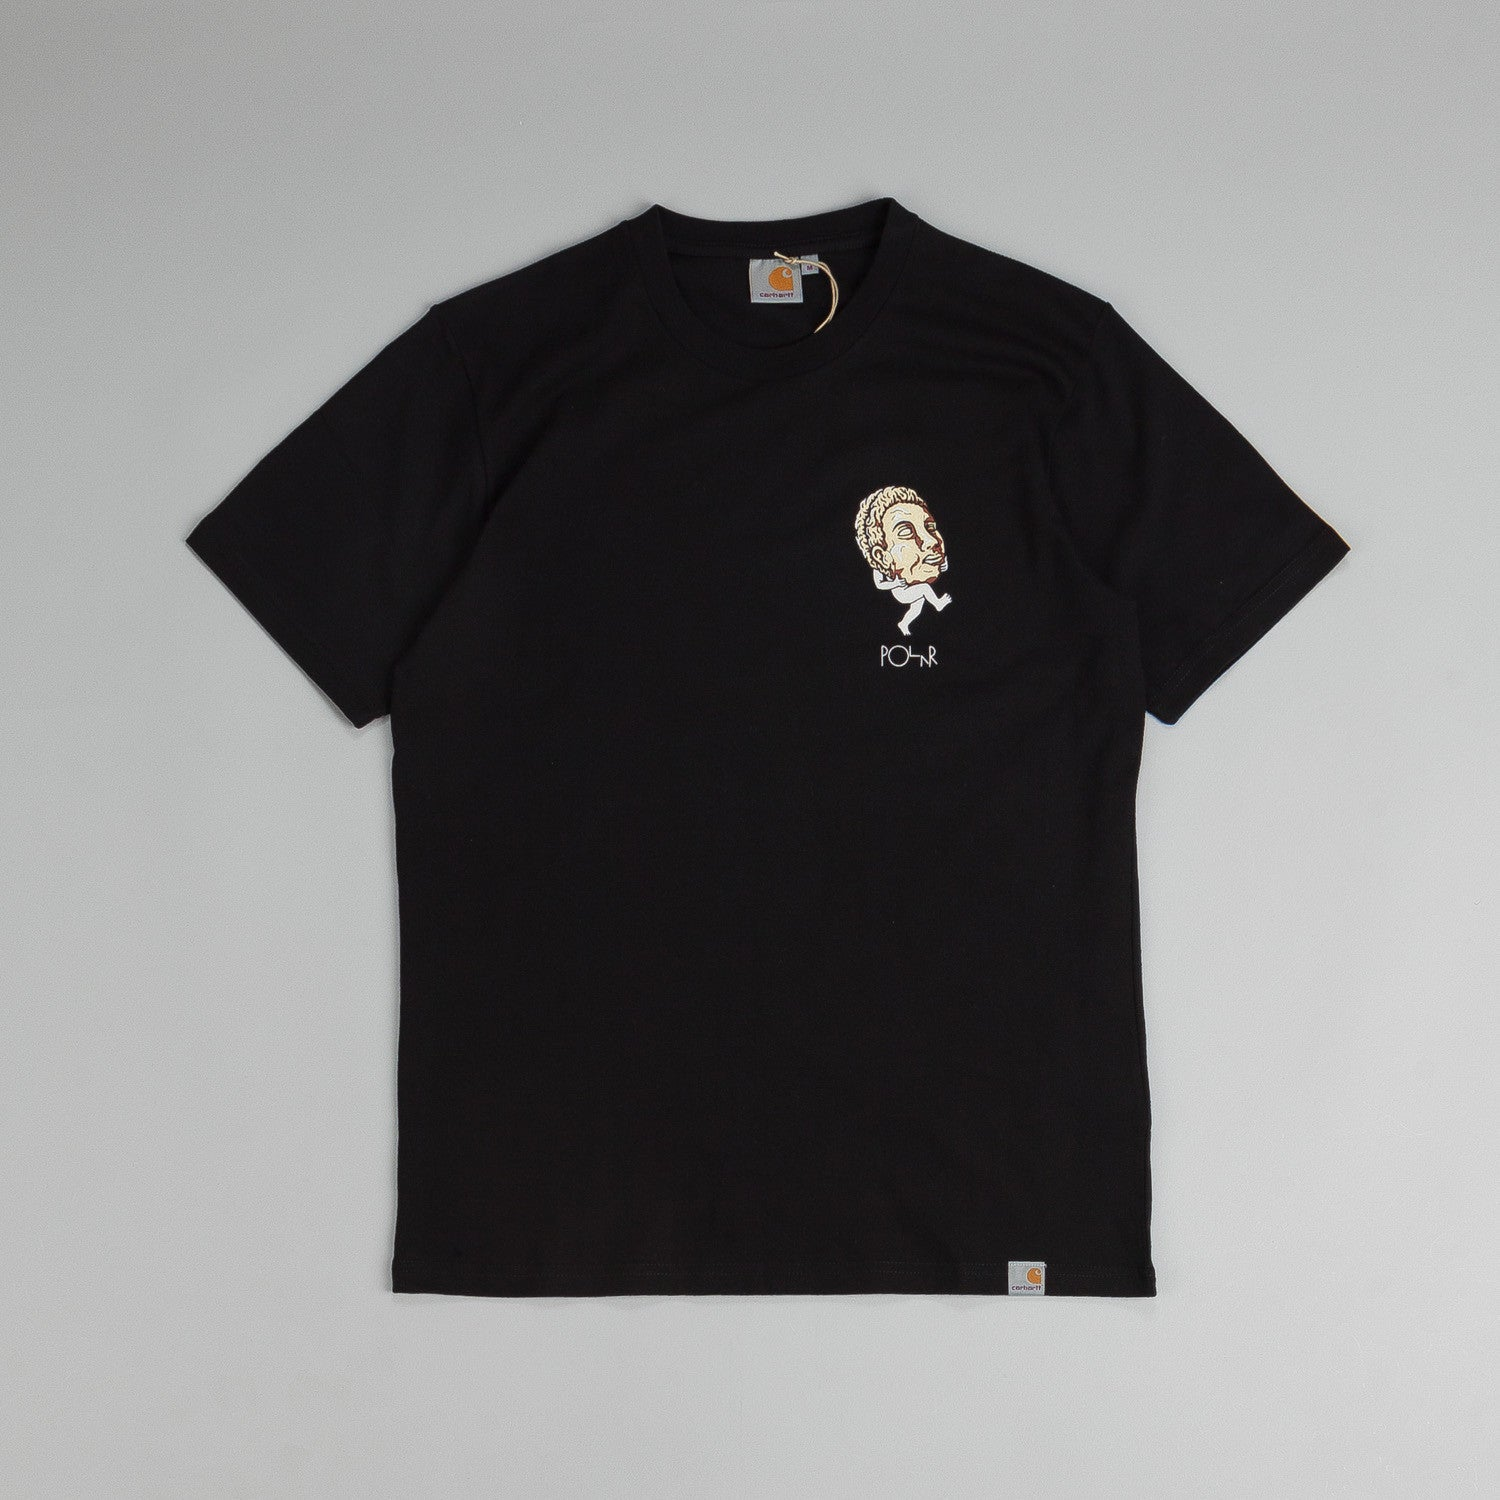 Carhartt X Polar Big Head T Shirt Black